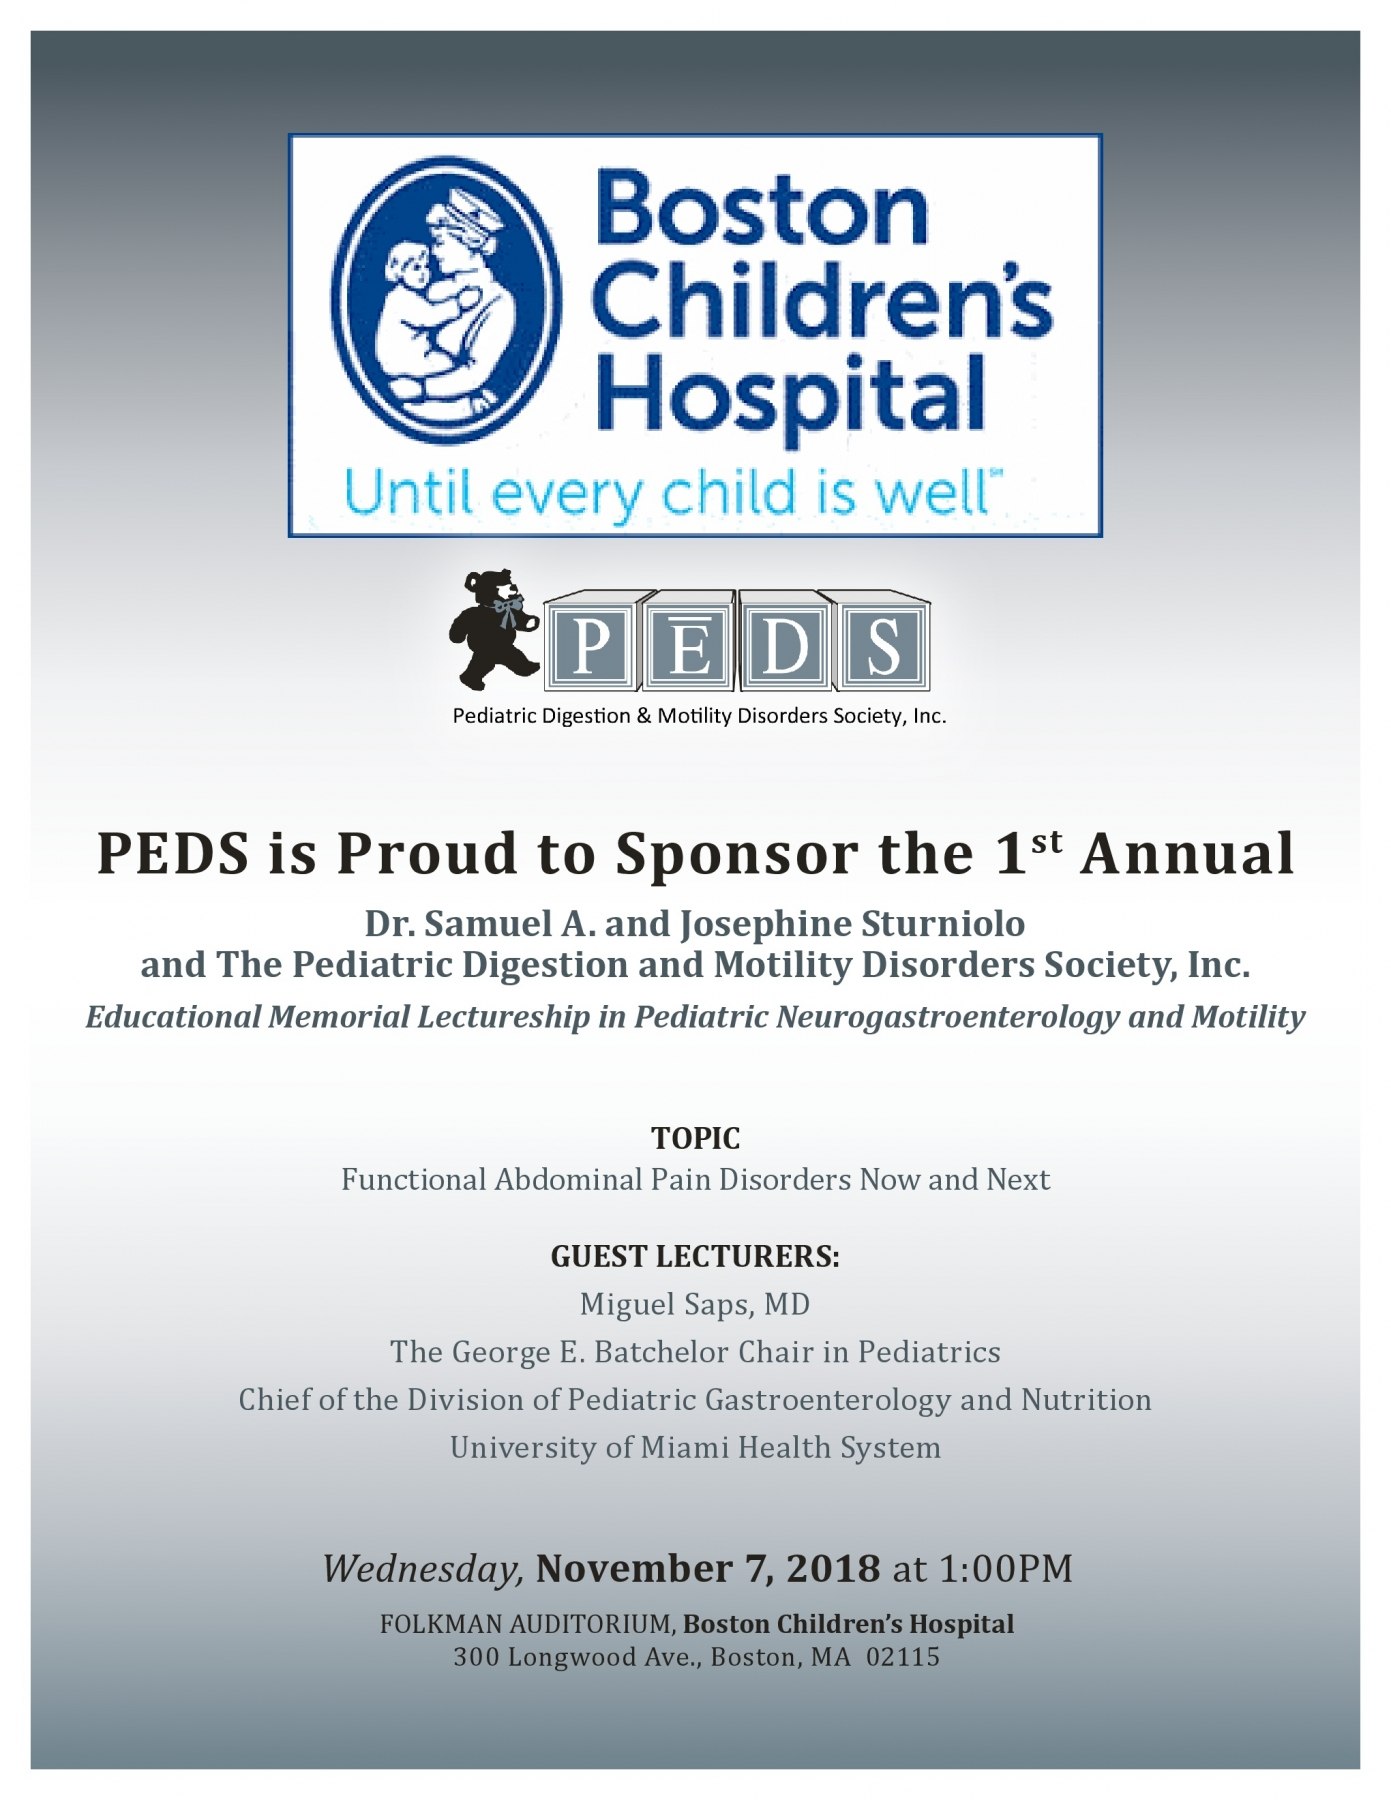 PEDS is proud to sponsor the 1st Annual Dr. Samuel A. and Josephine Sturniolo Educational Memorial Lectureship in Pediatric Neurogastroenterology and Motility